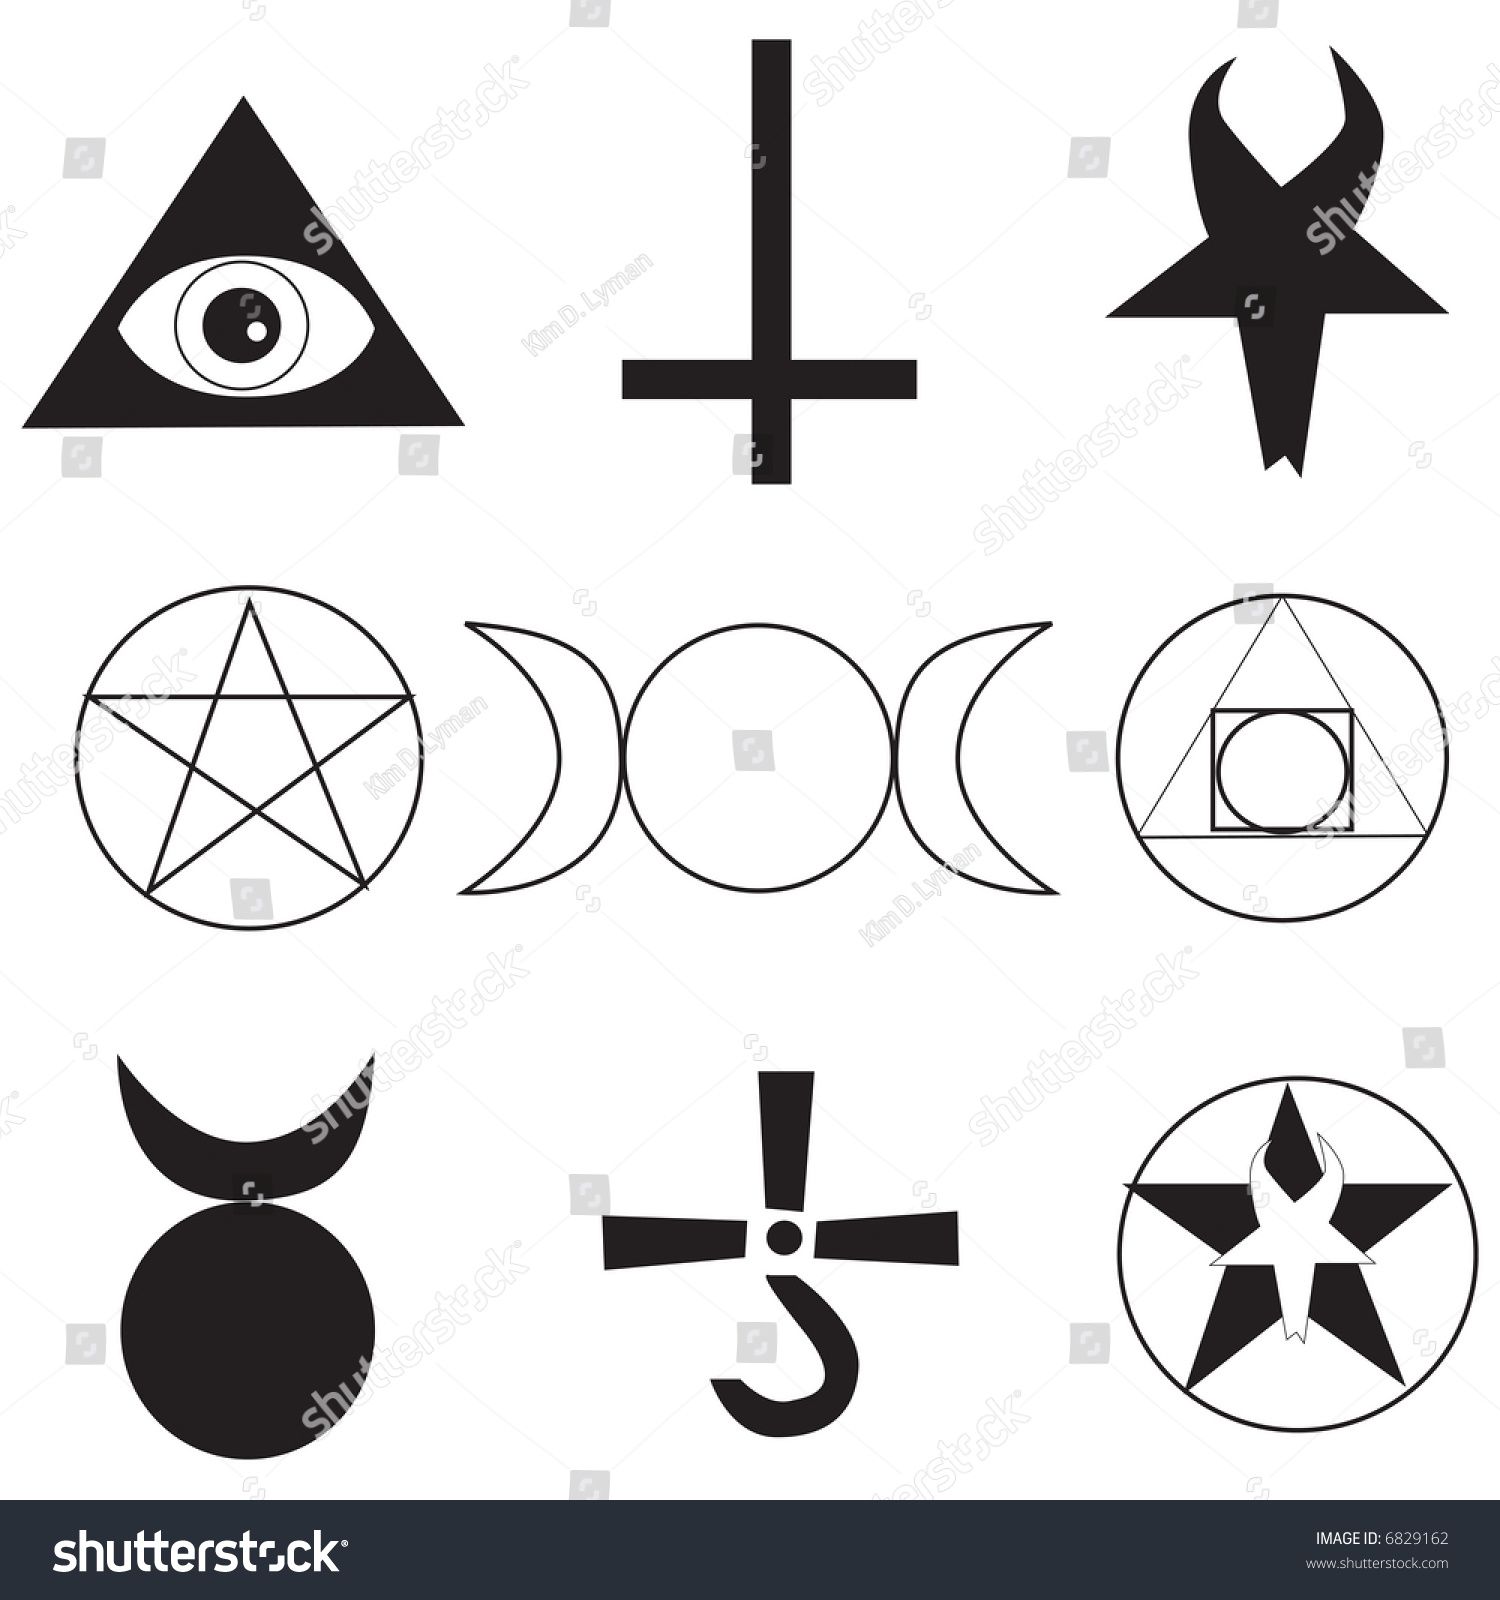 Pagan Occult Symbols Stock Vector Royalty Free 6829162 Shutterstock